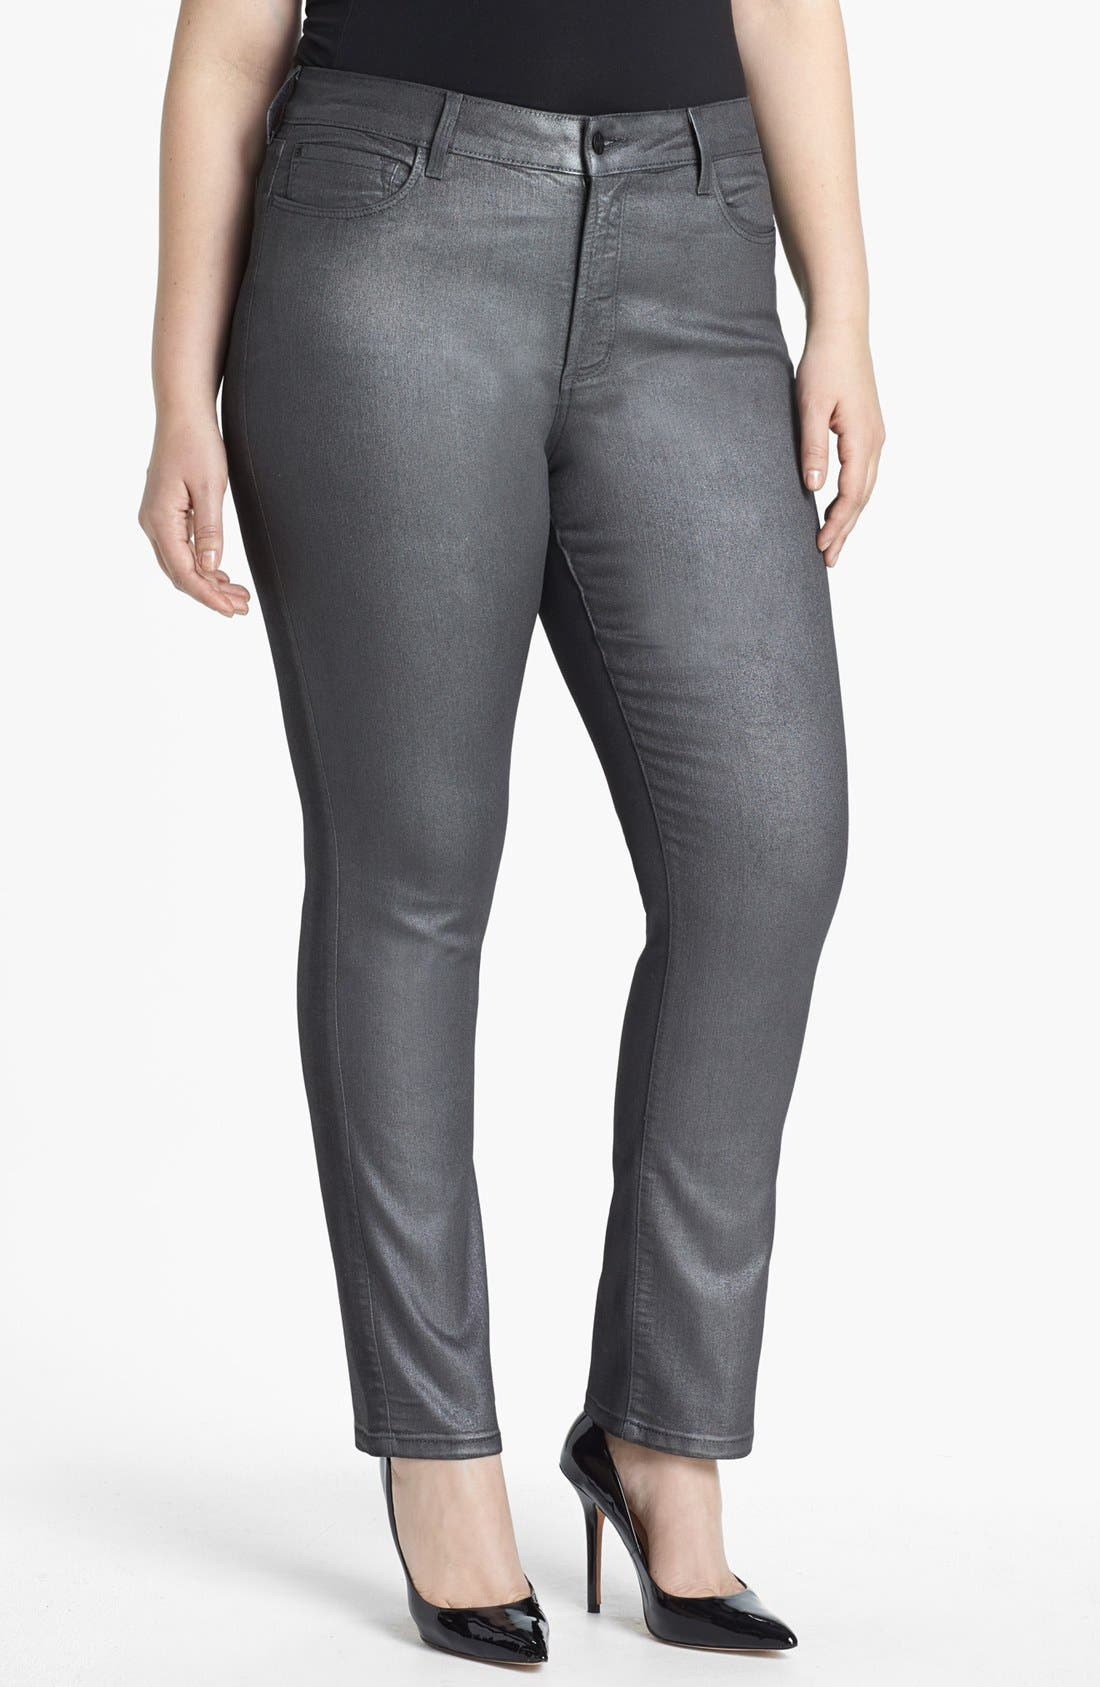 Alternate Image 1 Selected - NYDJ 'Sheri' Foiled Stretch Skinny Jeans (Plus Size)